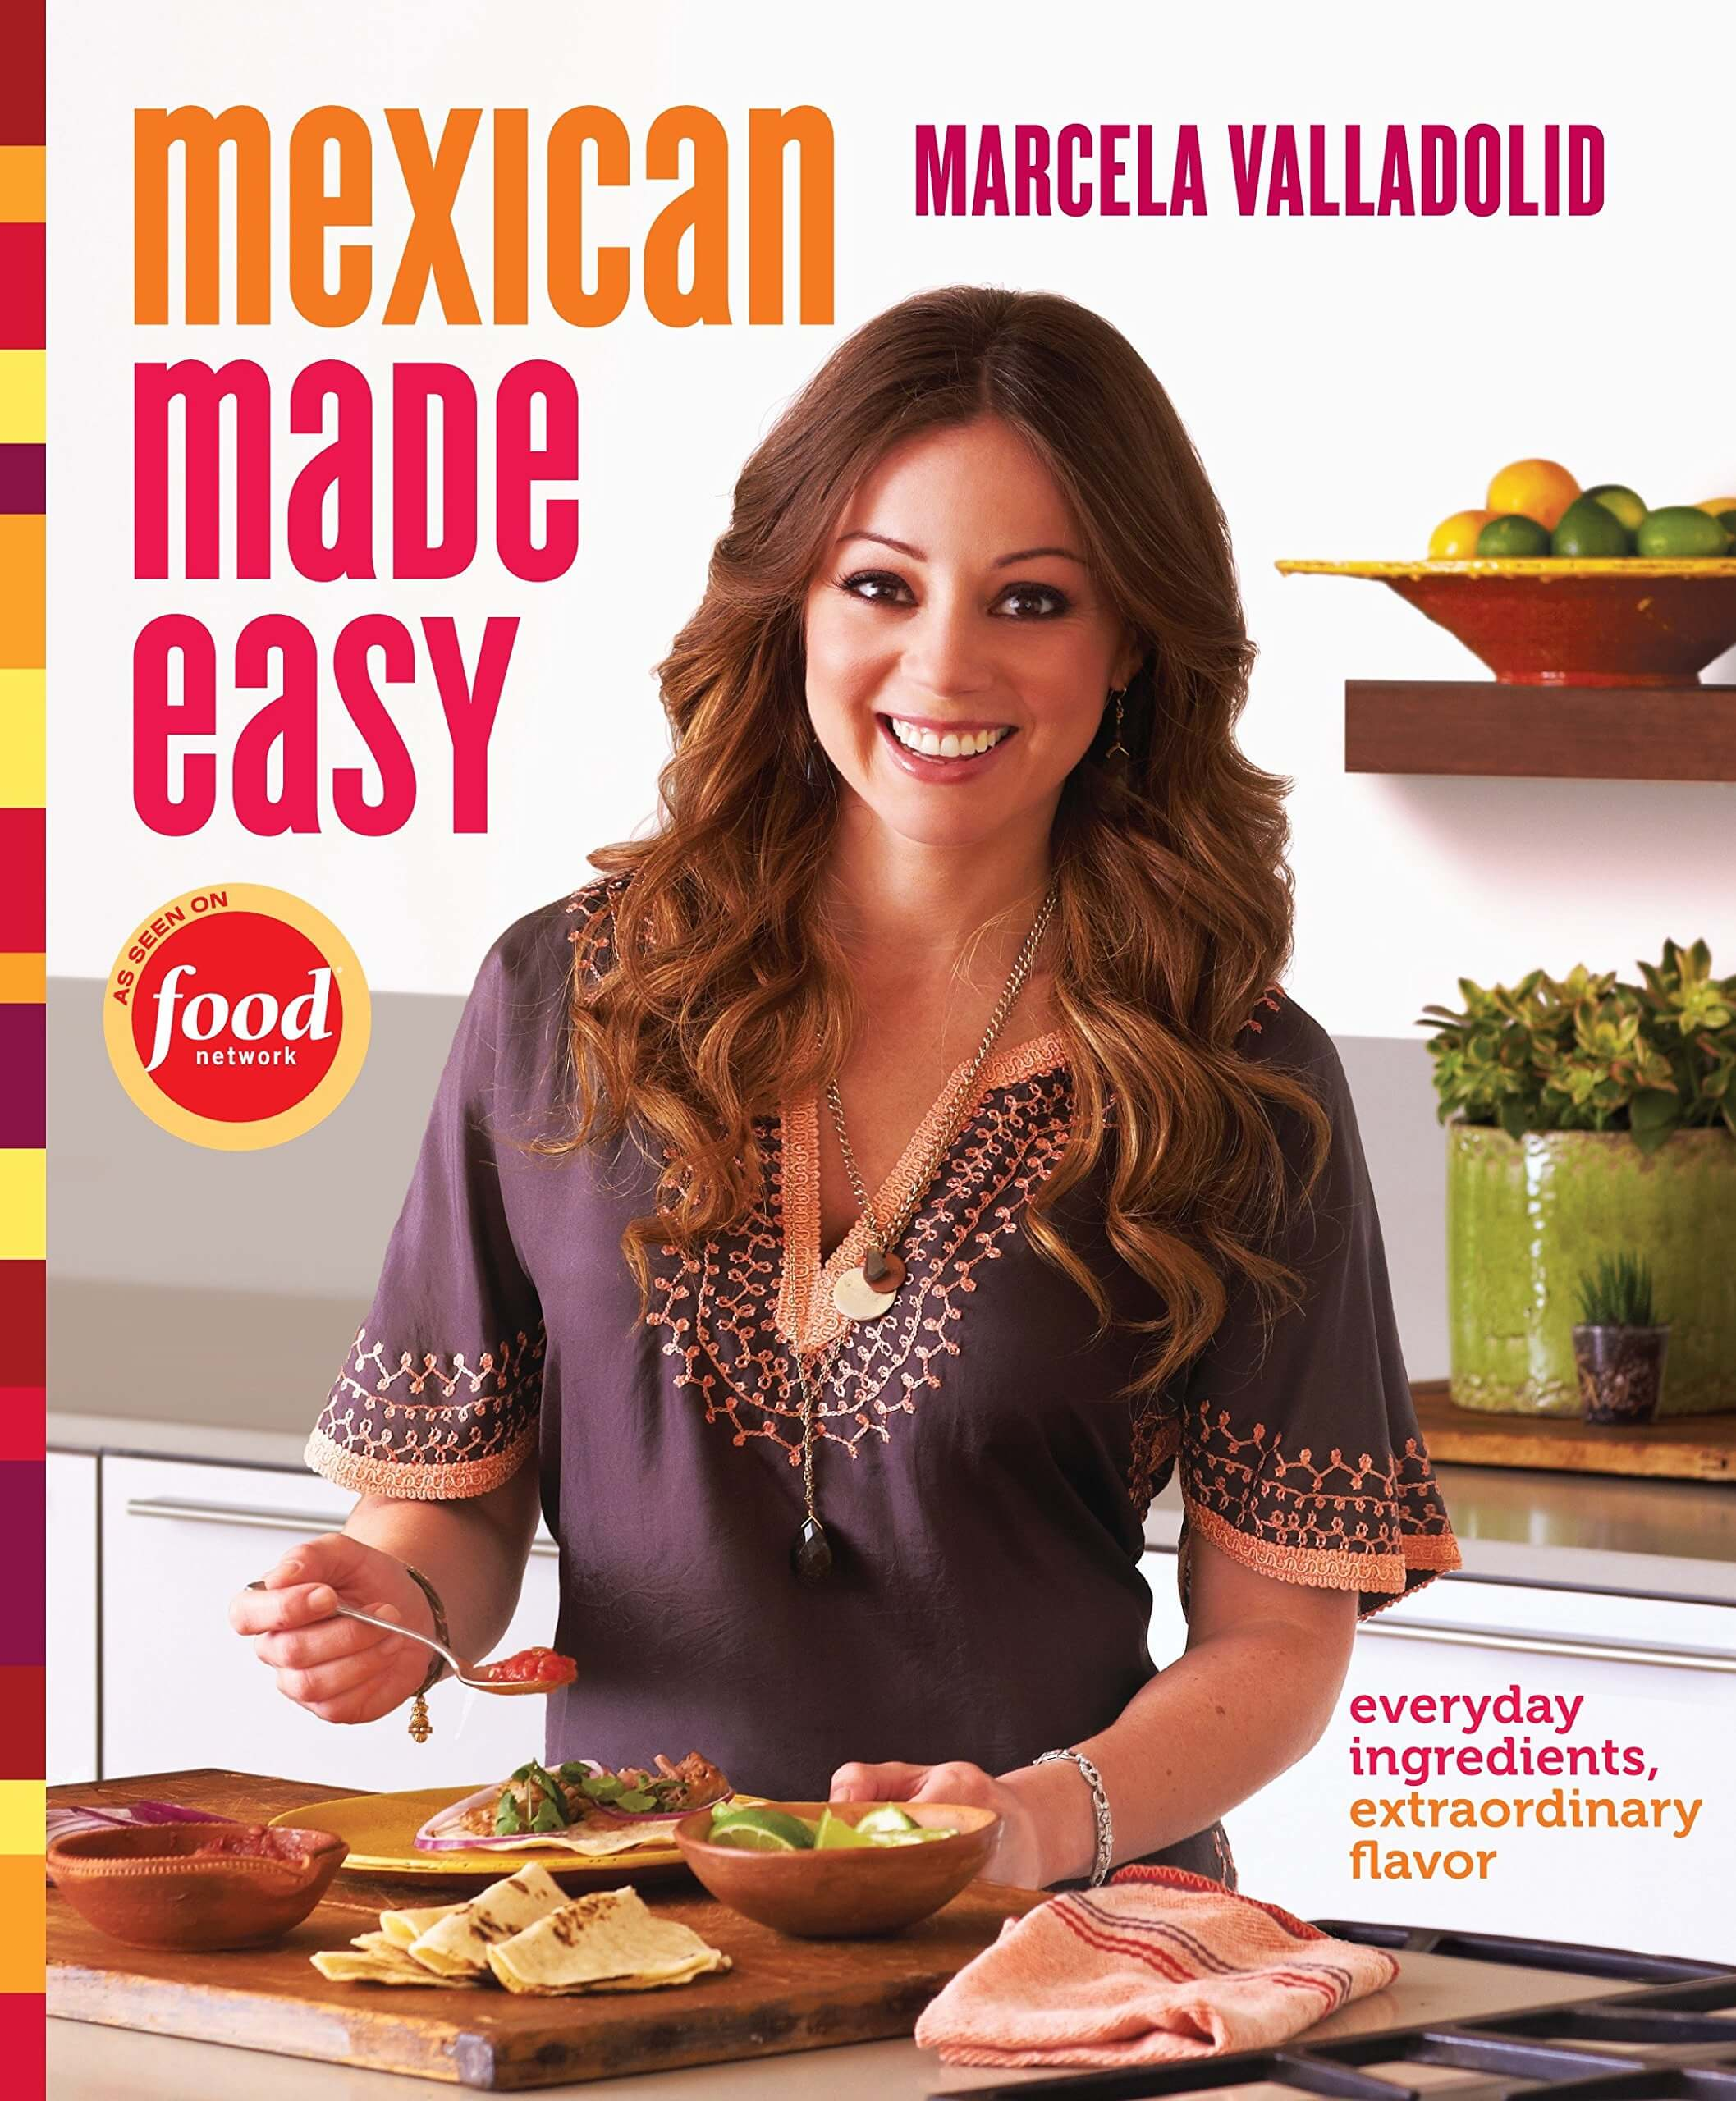 Mexican Made Easy book cover image